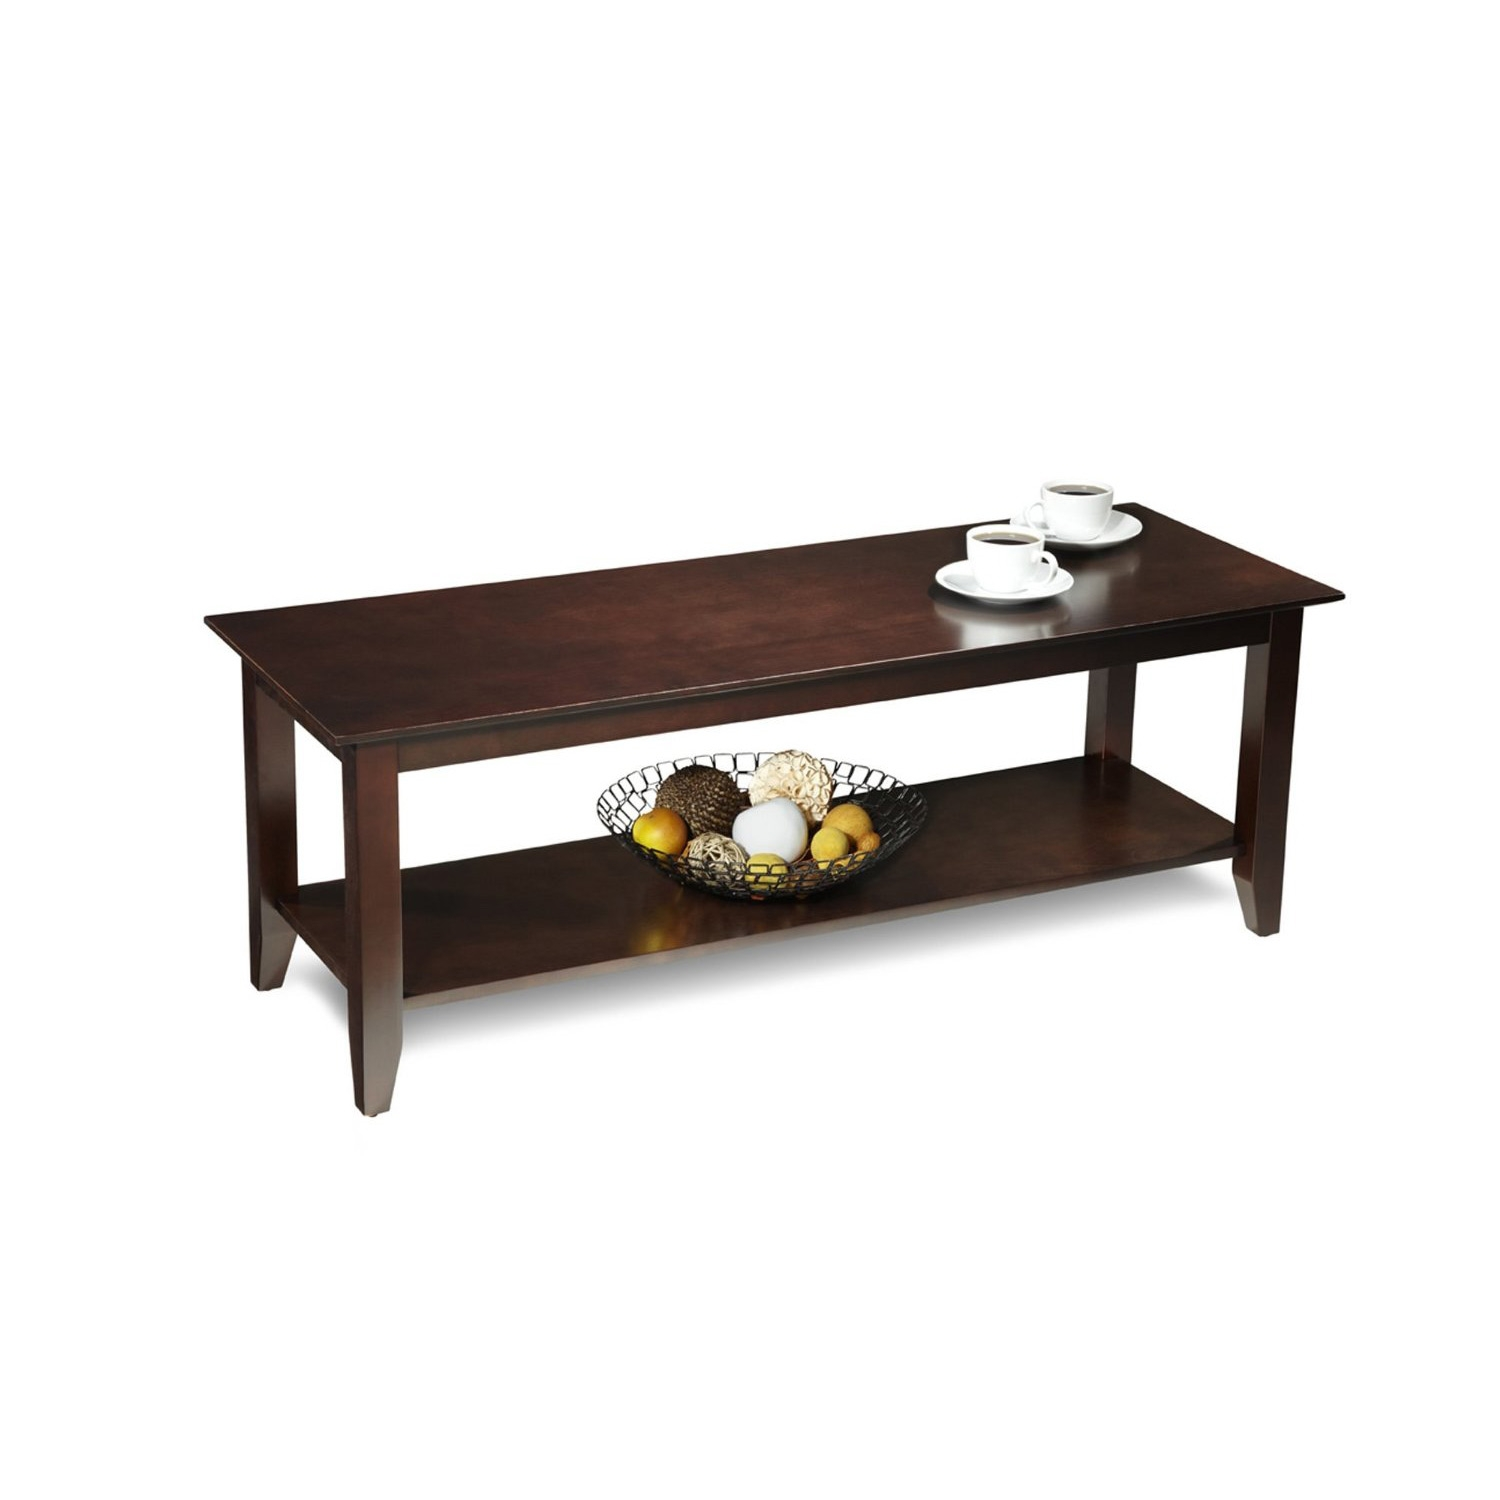 This Espresso Wood Grain Coffee Table with Bottom Shelf would be a great addition to your home. Combining exciting designs with economical overseas manufacturing to bring you the finest in sensible contemporary furniture. Focusing on R-T-A Entertainment, TV, Storage, and Accent furniture.